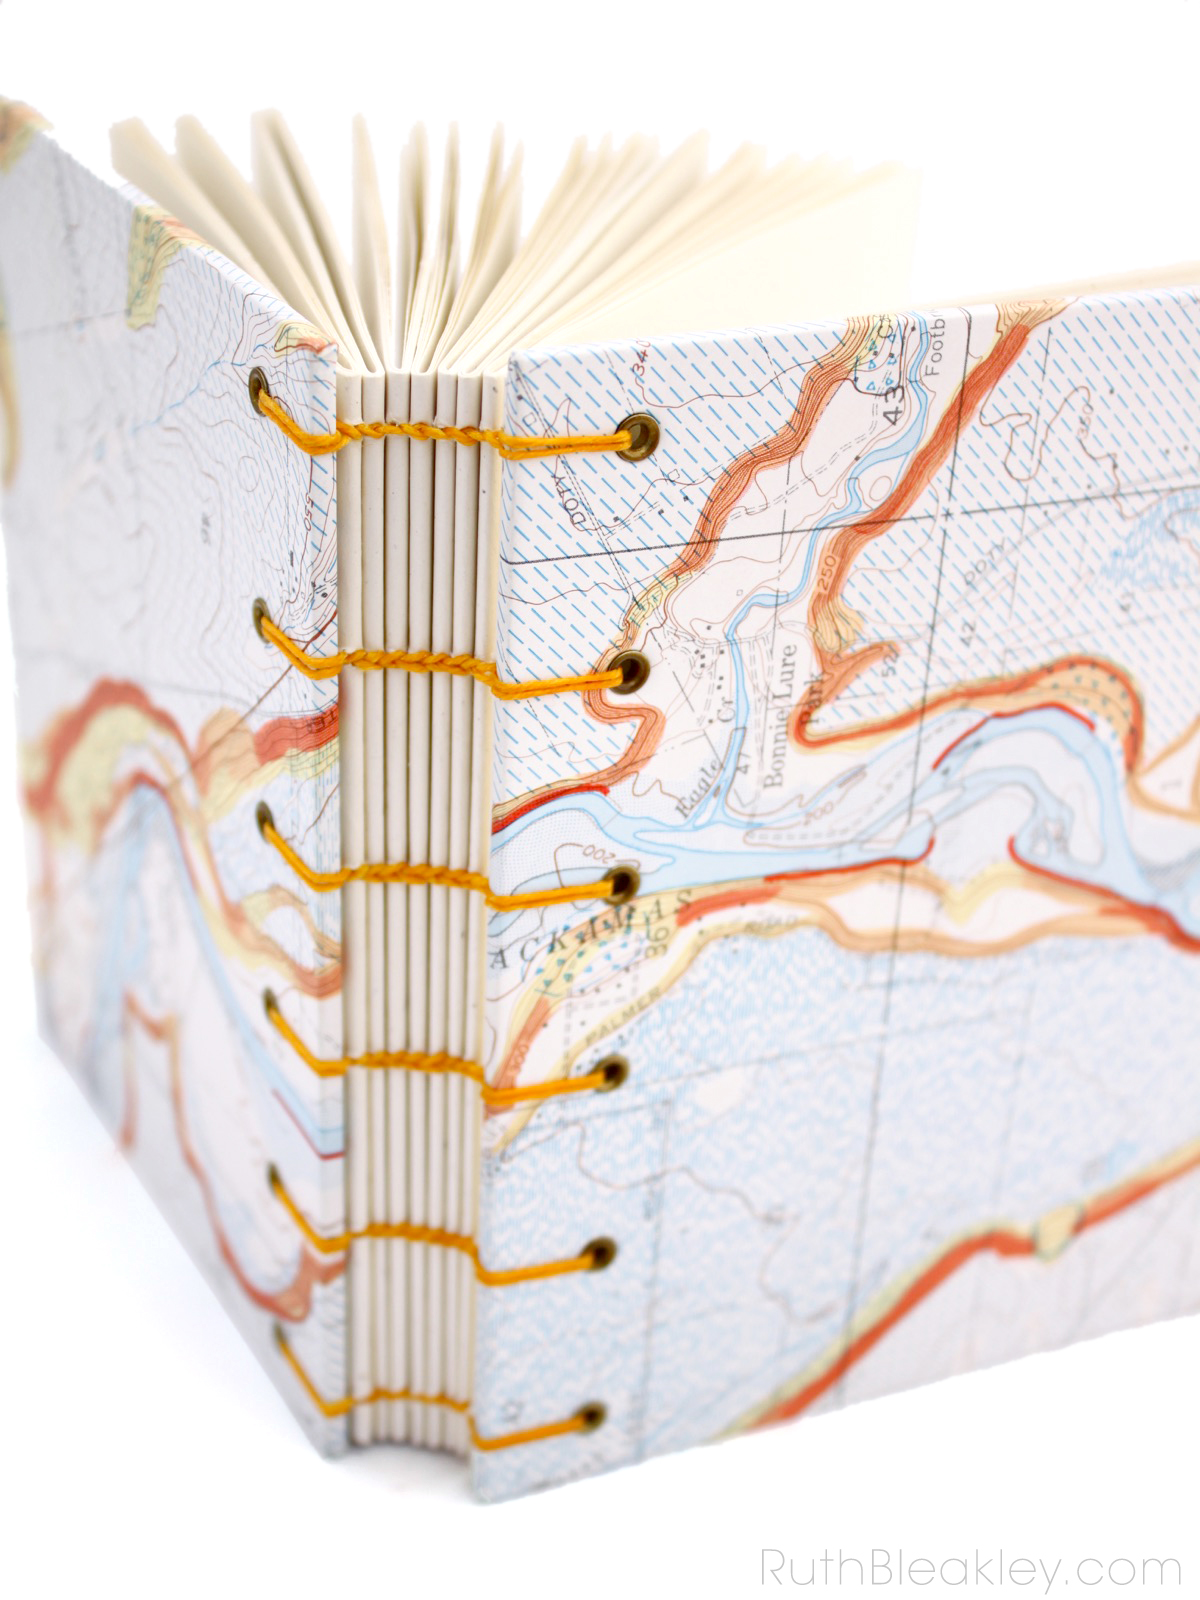 Topographic Map Journal by Ruth Bleakley with coptic stitch binding